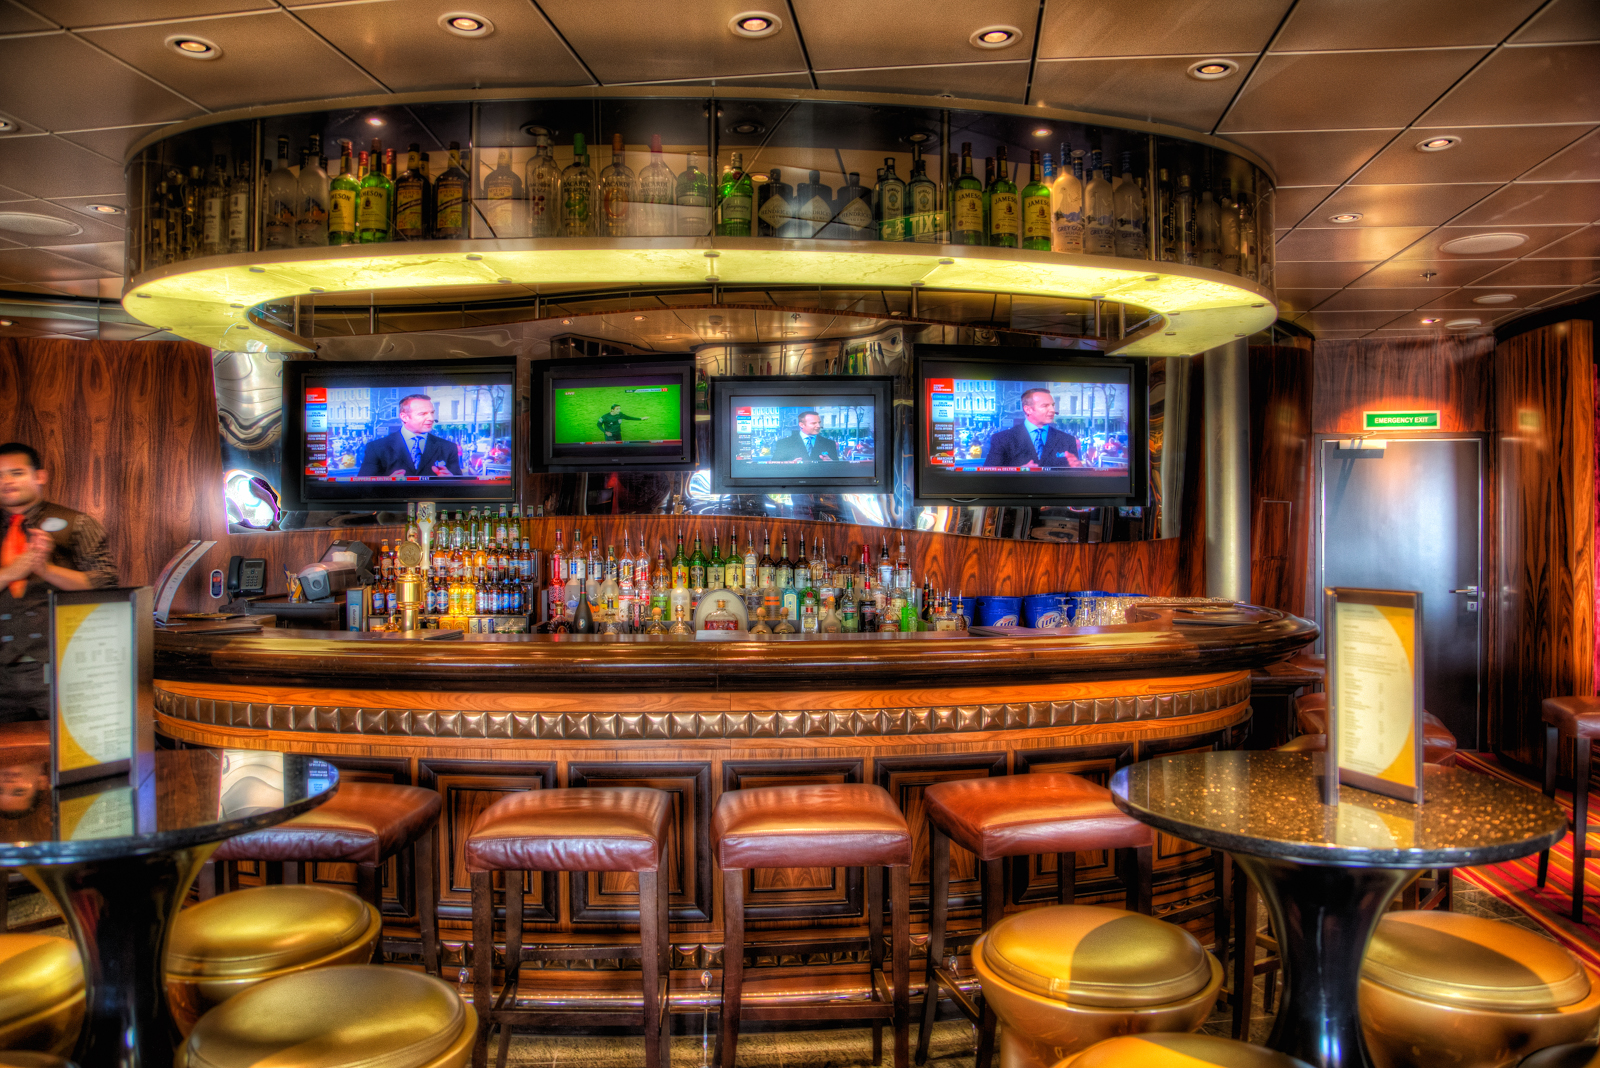 Disney dream the district lounge and 687 sports bar matthew paulson photography - Images of bars ...